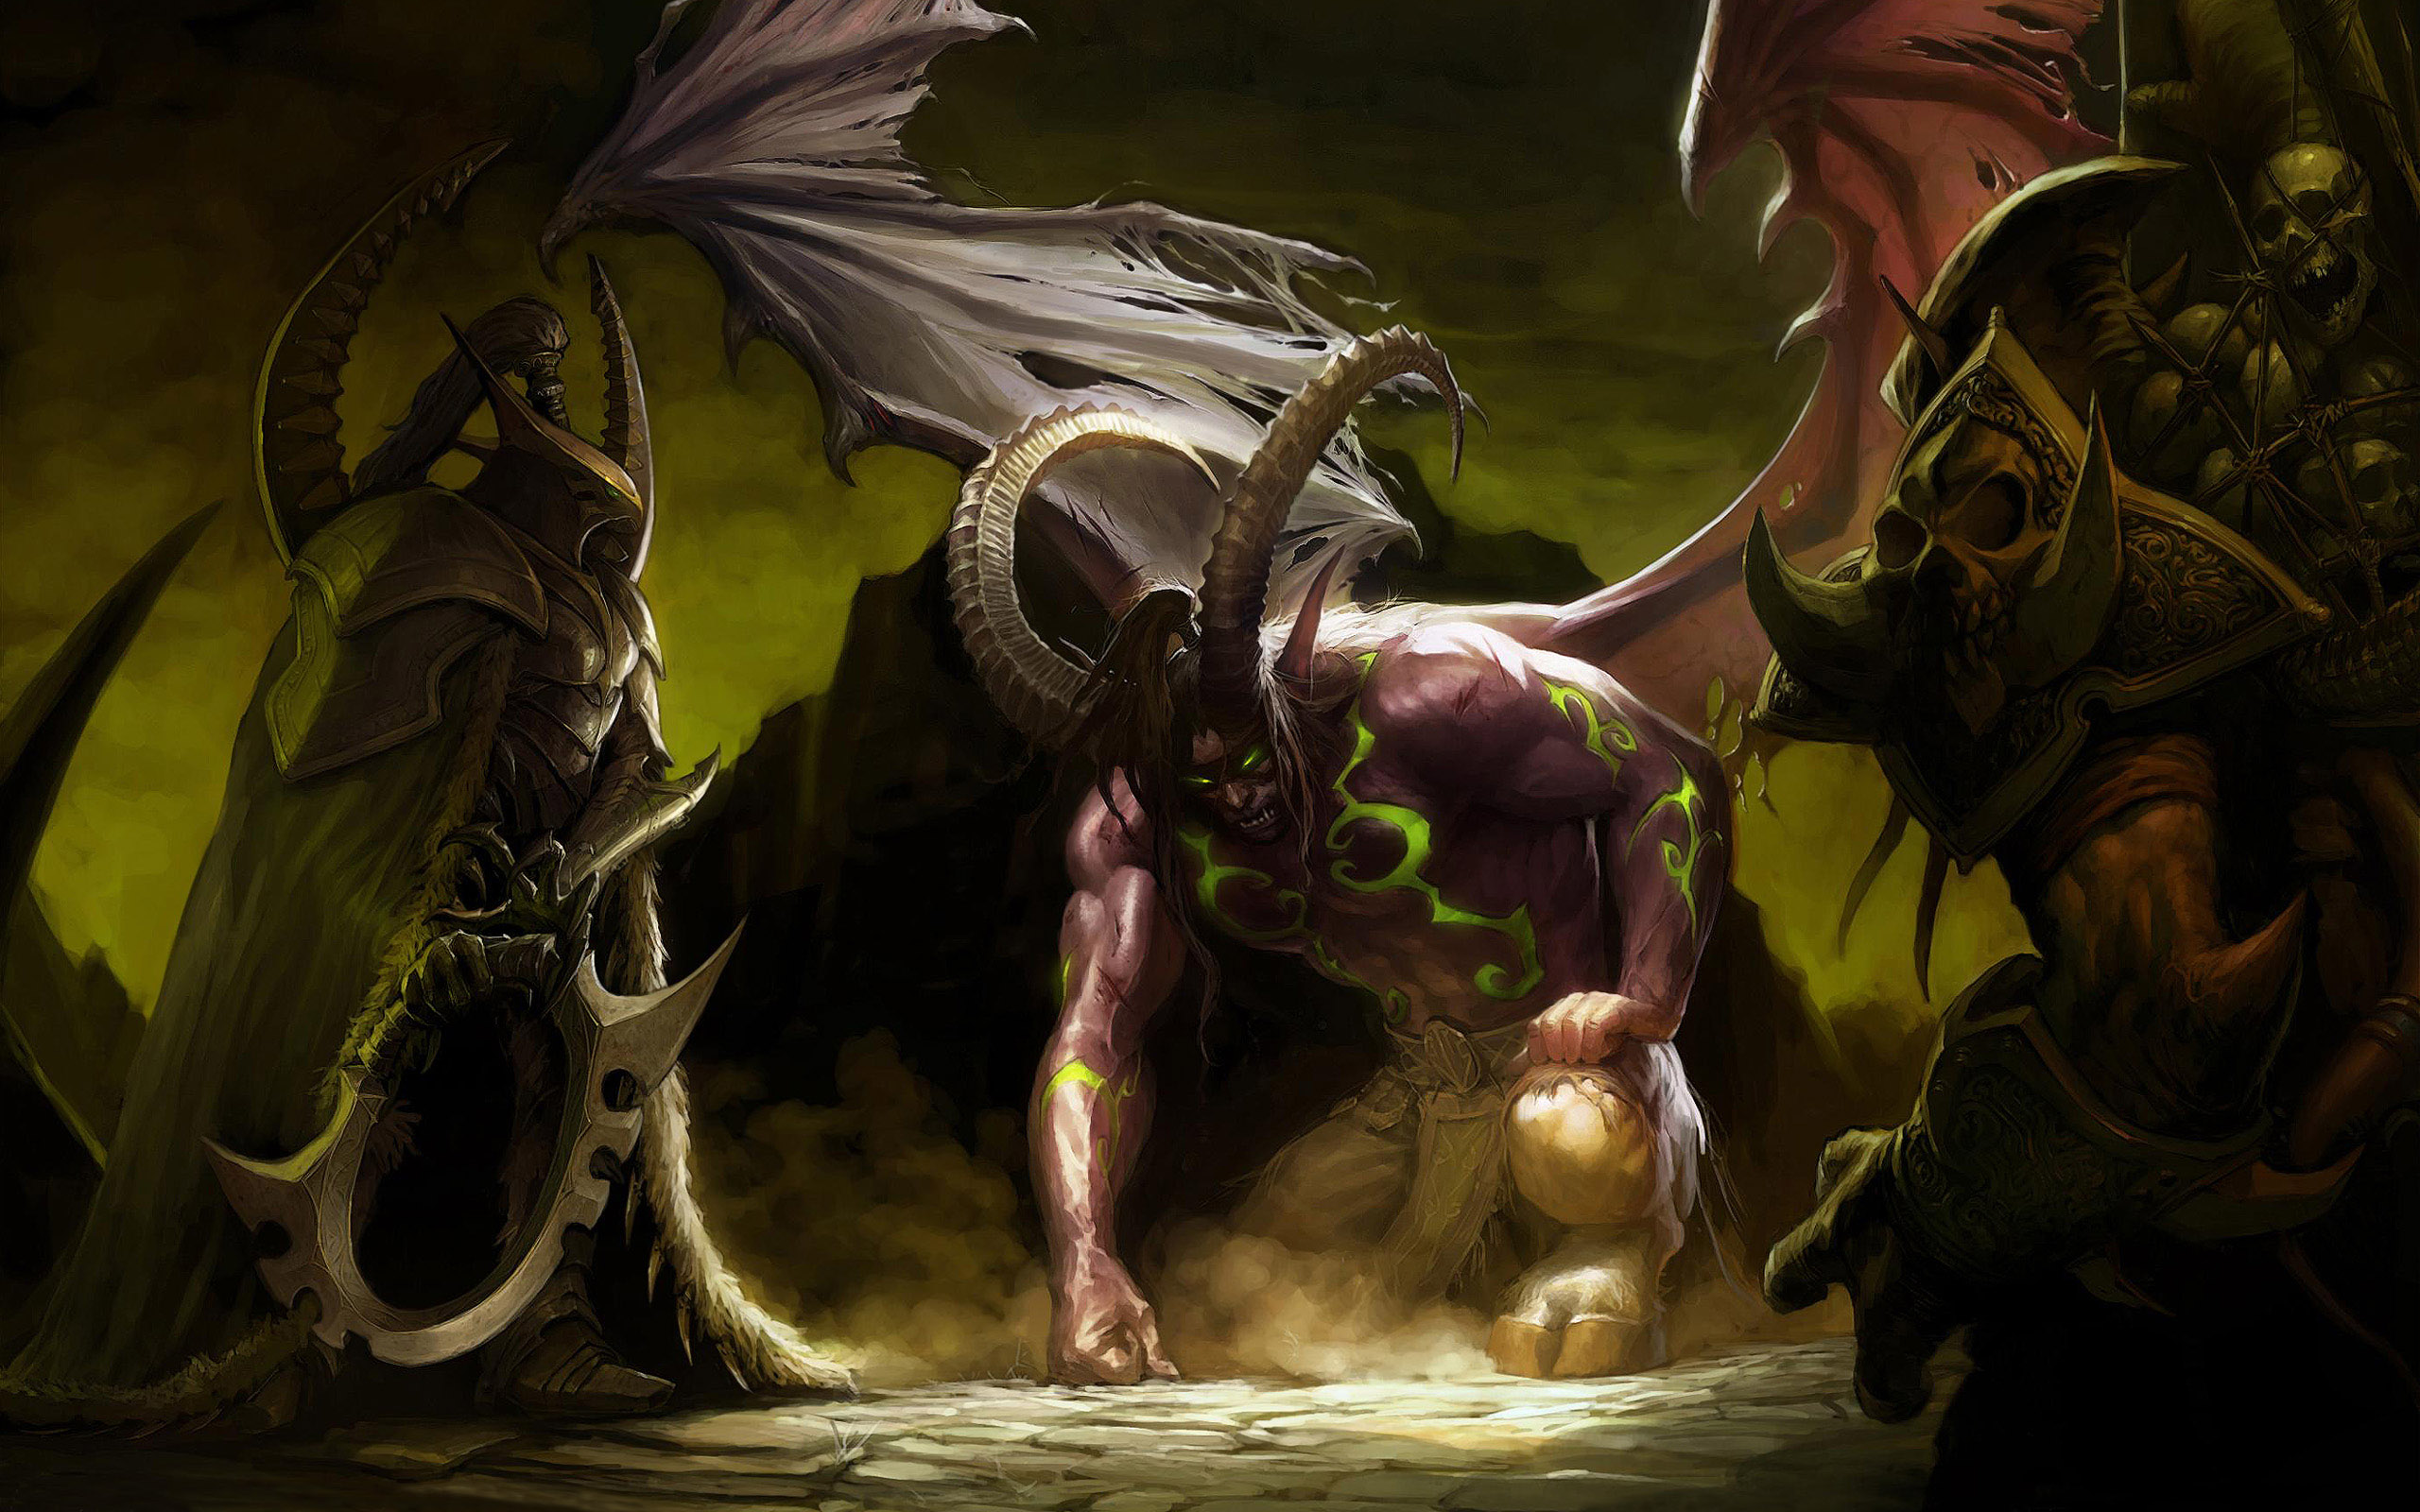 download World of Warcraft Background and PostersHope you like this 2560x1600